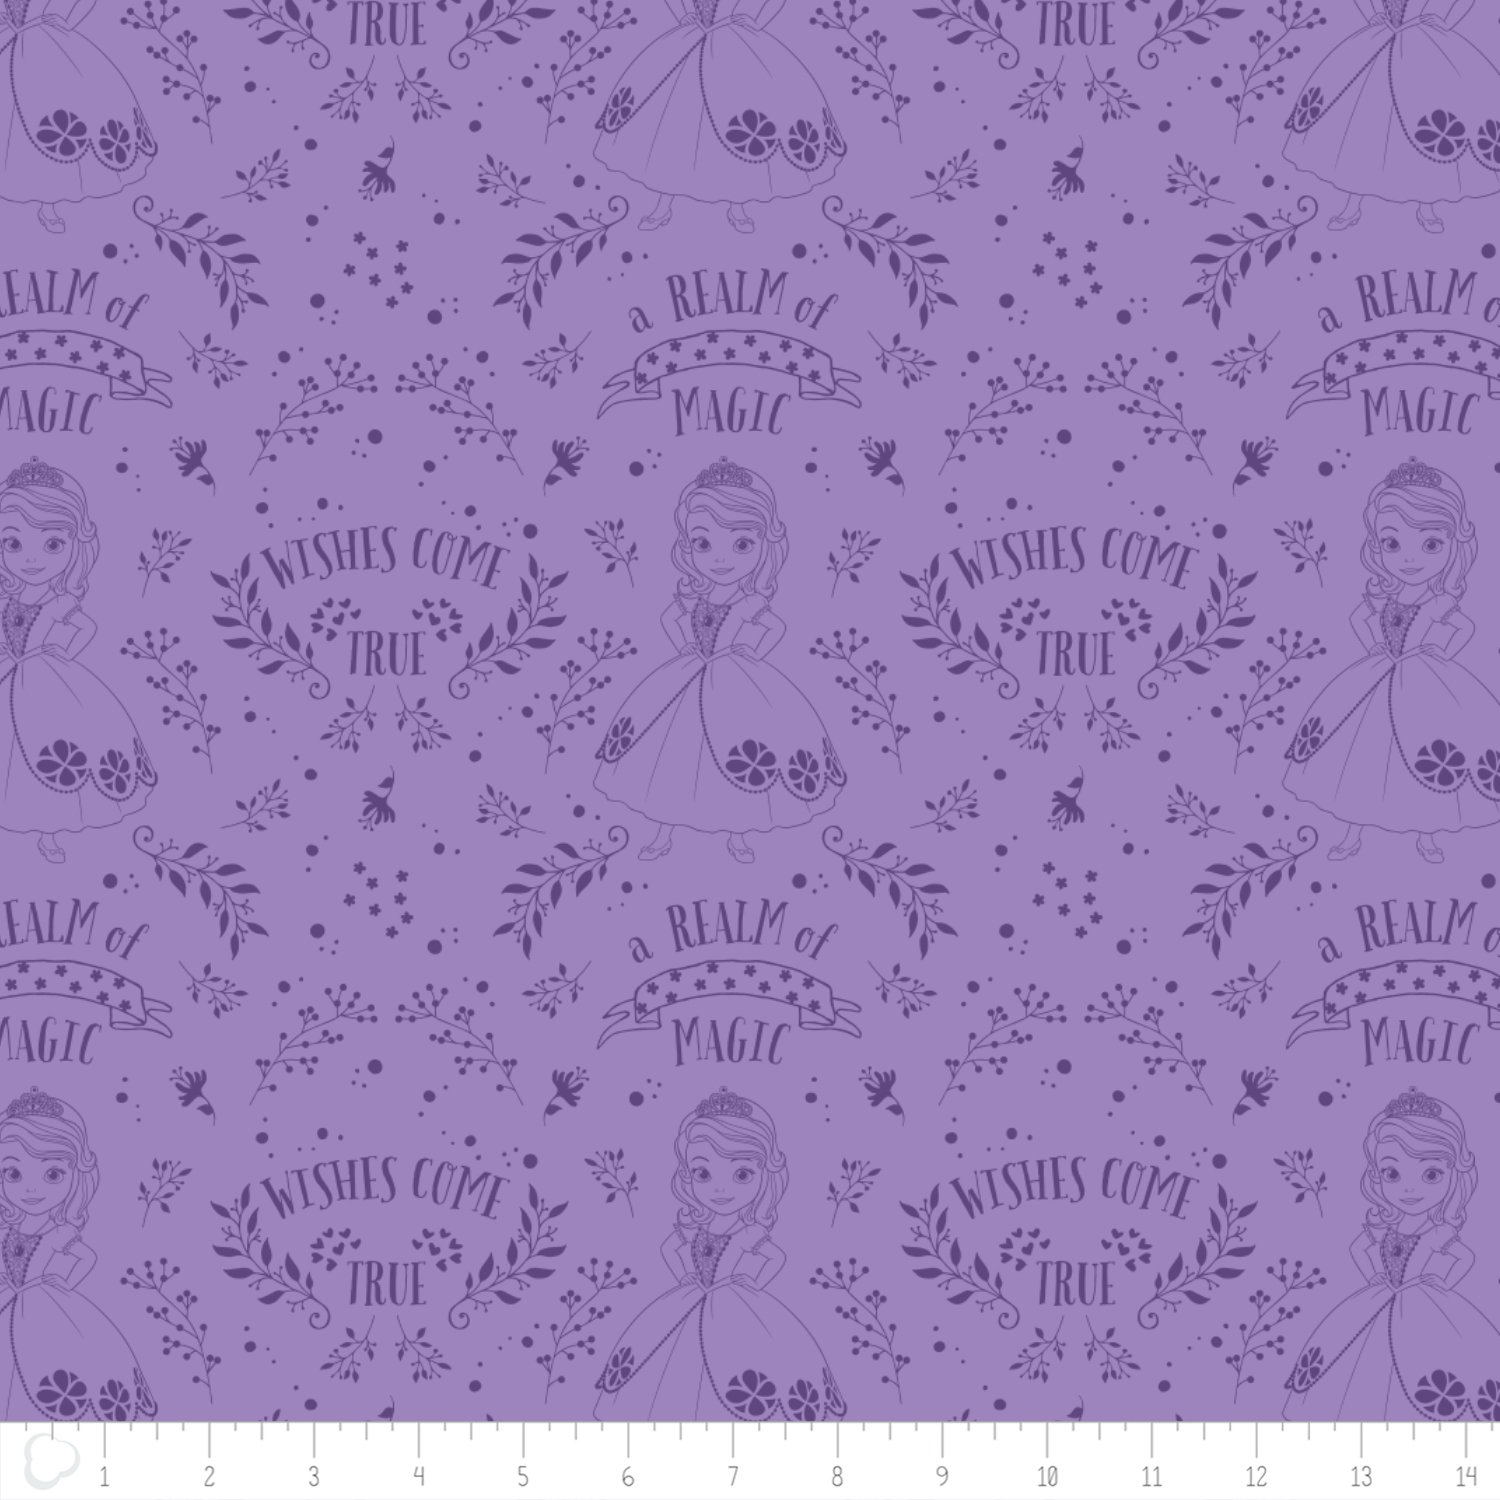 *DISNEY PRINCESS//SOFIA THE FIRST//OUTLINE TOILE//PURPLE//CAMELOT